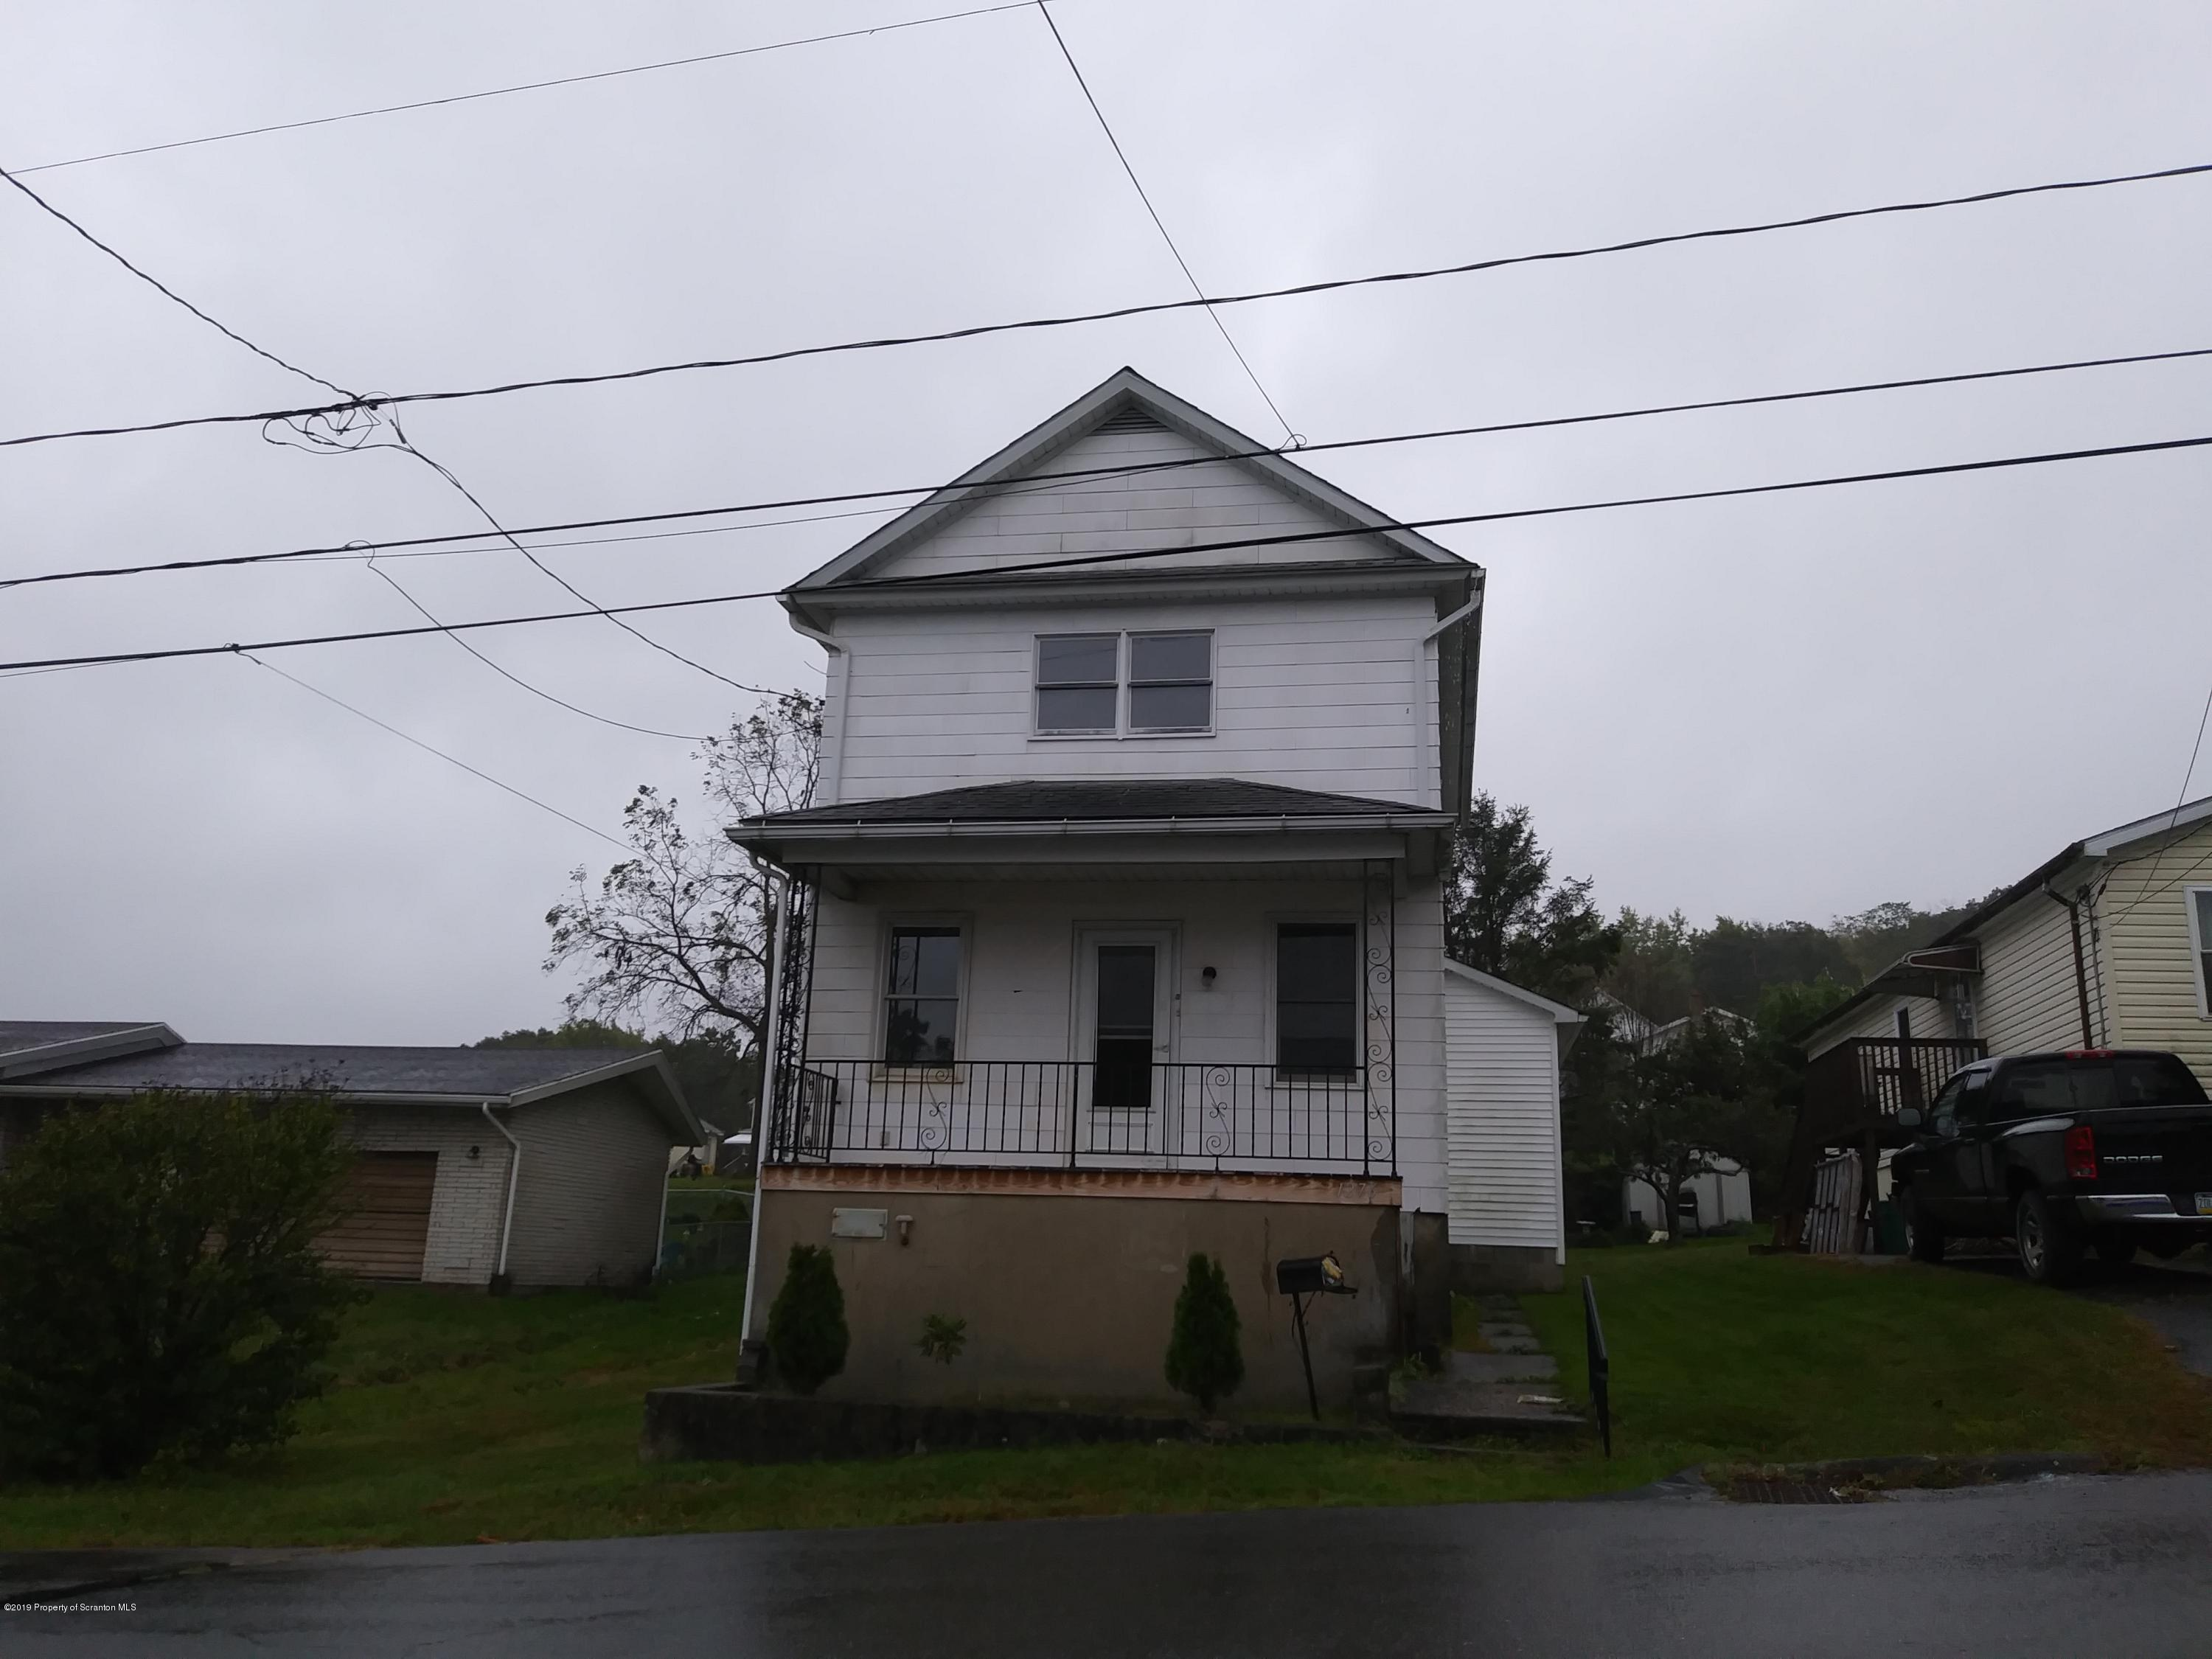 1276 Franklin St, Old Forge, Pennsylvania 18518, 2 Bedrooms Bedrooms, 5 Rooms Rooms,1 BathroomBathrooms,Single Family,For Sale,Franklin,19-5274